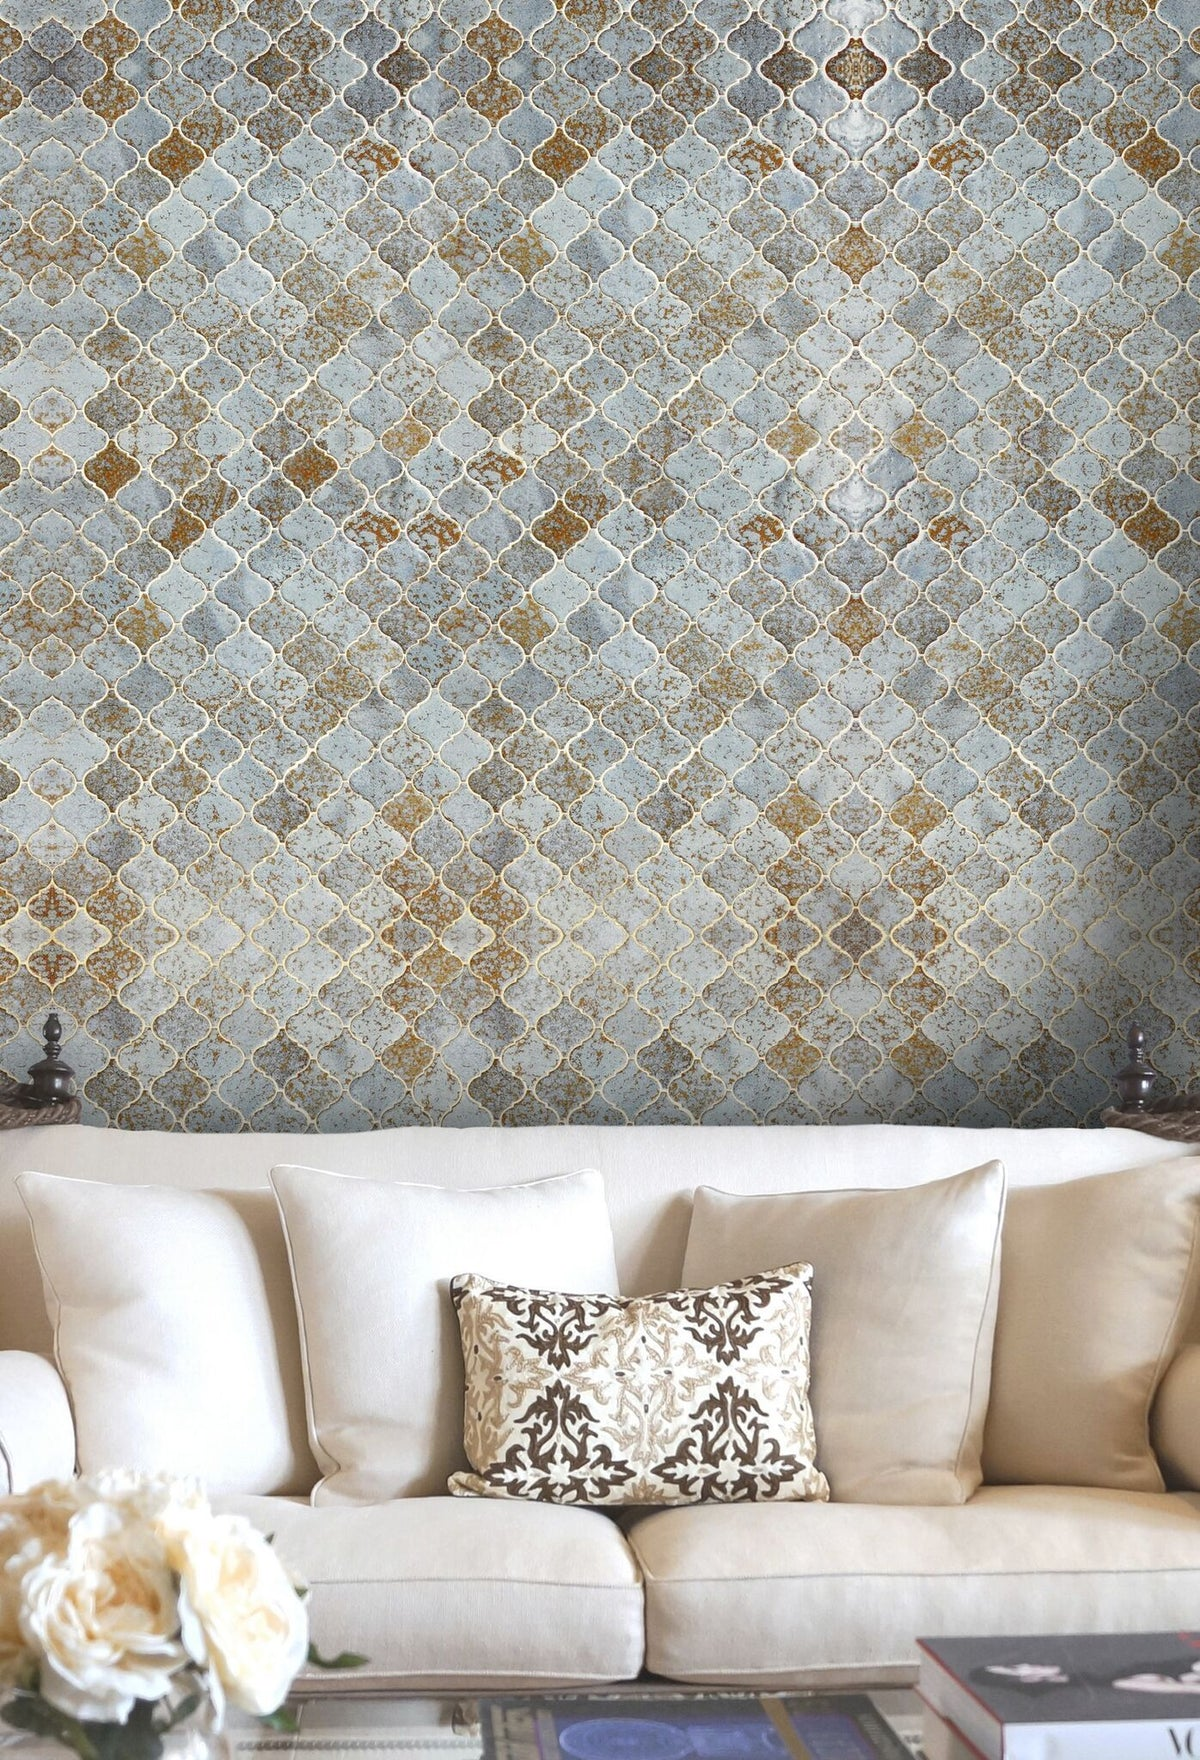 Morocco Tiles Wallpaper-Mind The Gap-Contract Furniture Store